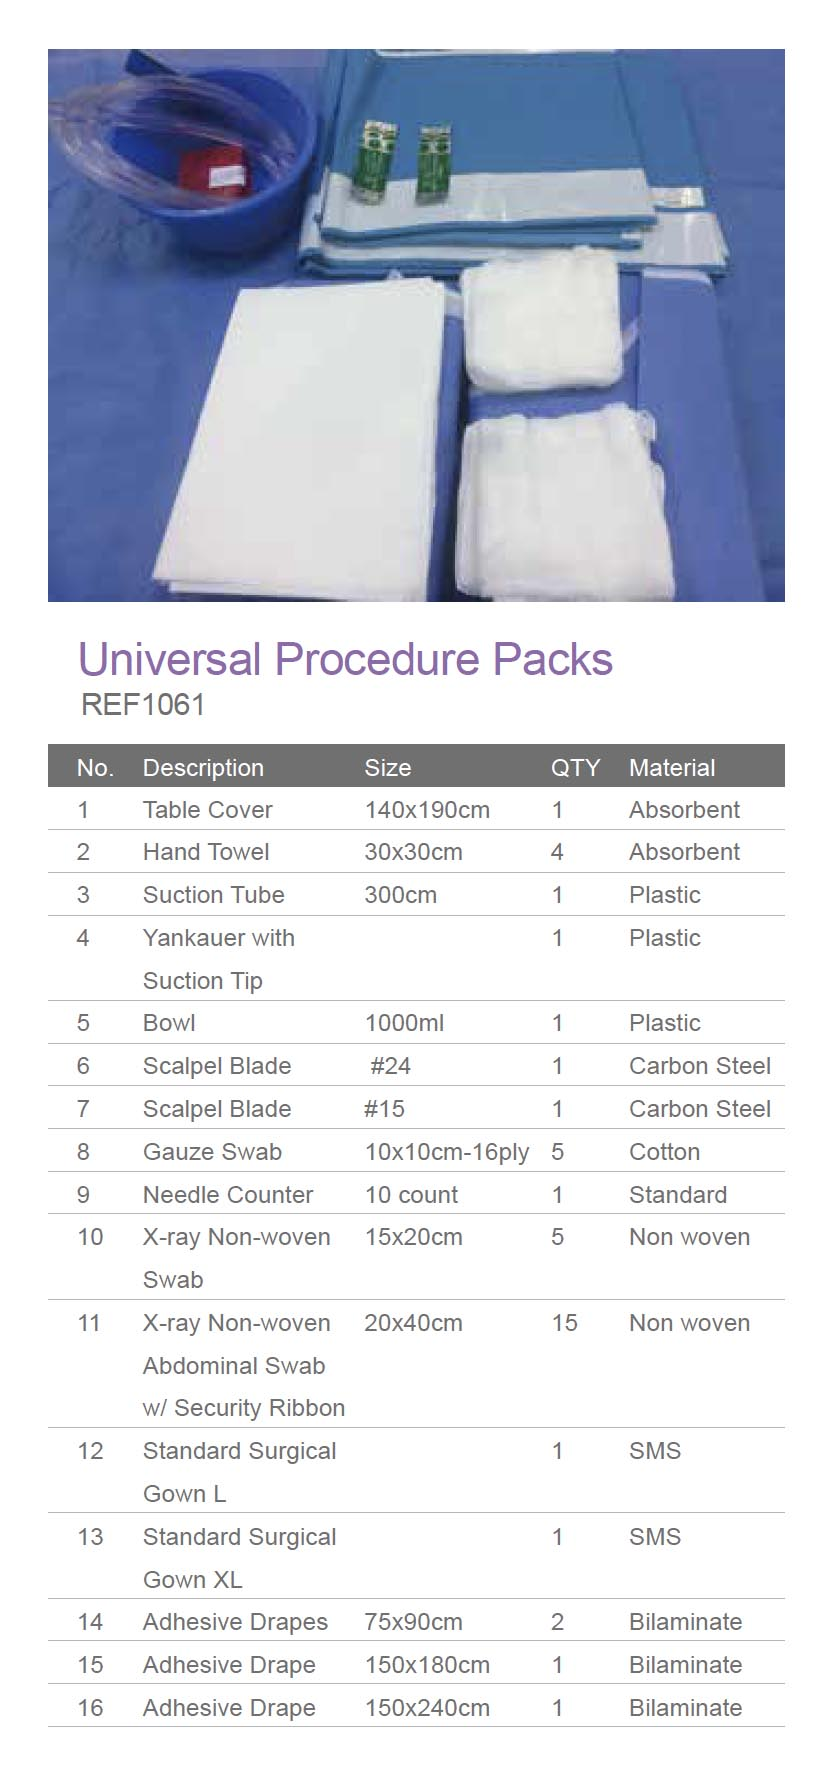 Universal Procedure Pack REF1061| Customized Procedure Packs - Medical Group Care